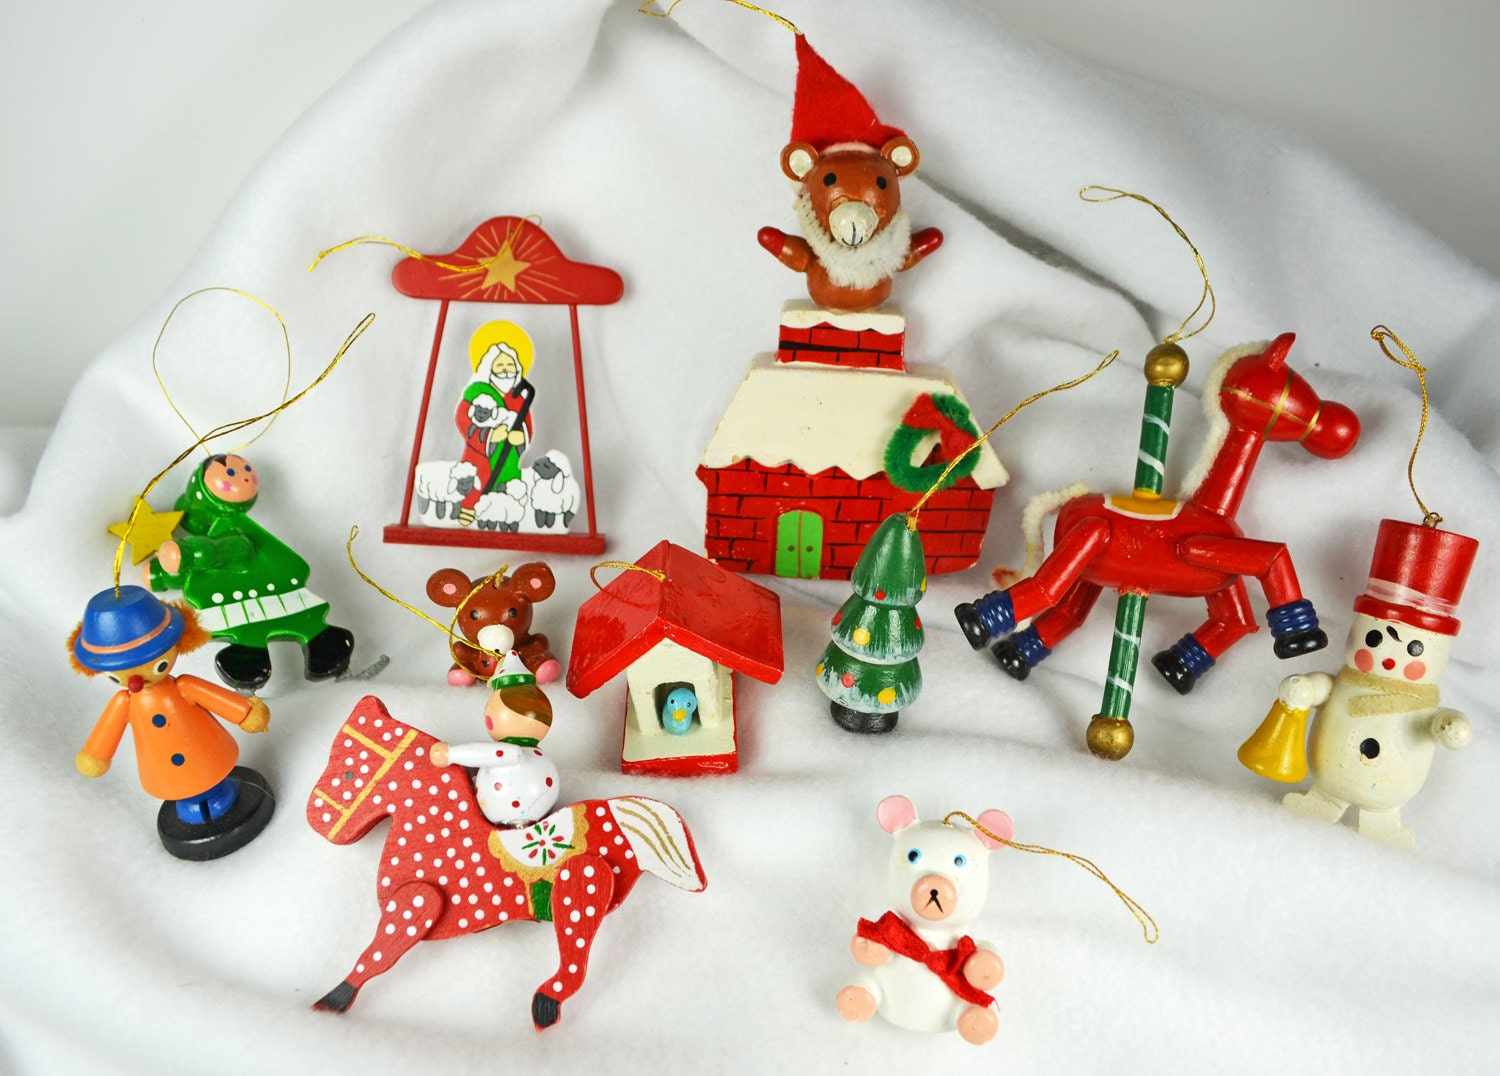 Vintage 1970's Wooden Toy Christmas Ornaments...marked